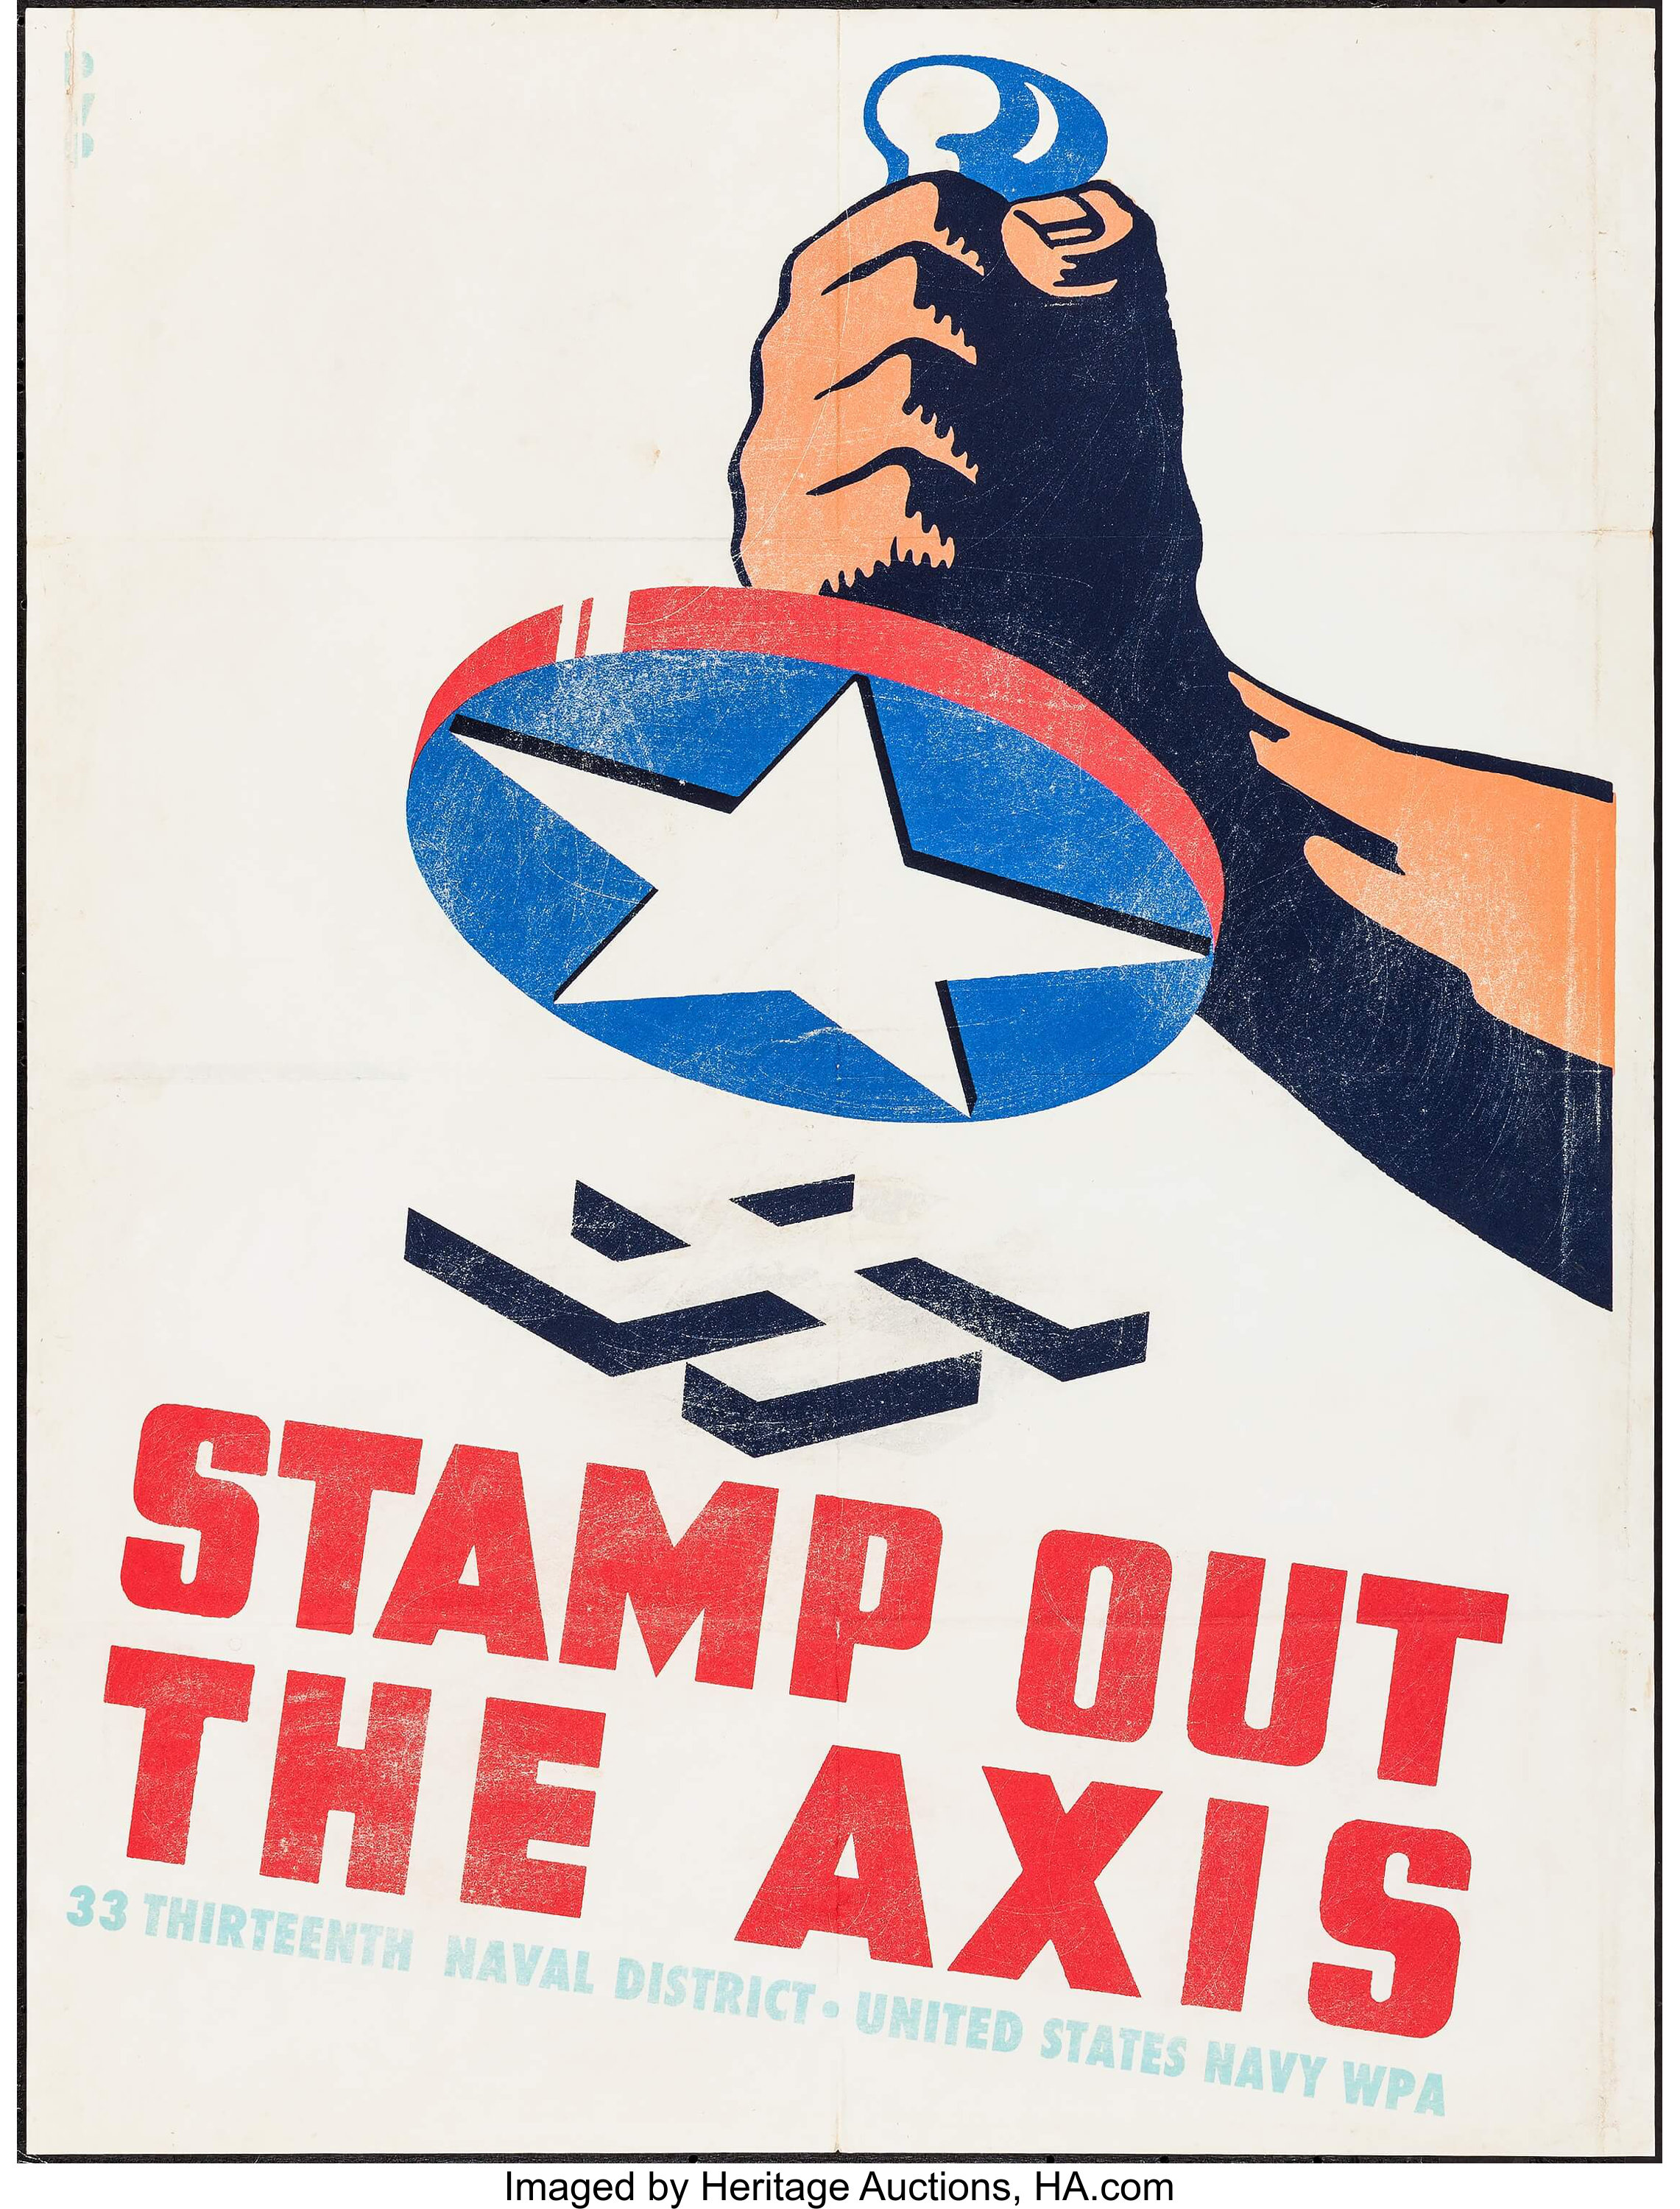 World War II Propaganda Poster (United States Navy WPA, 1941